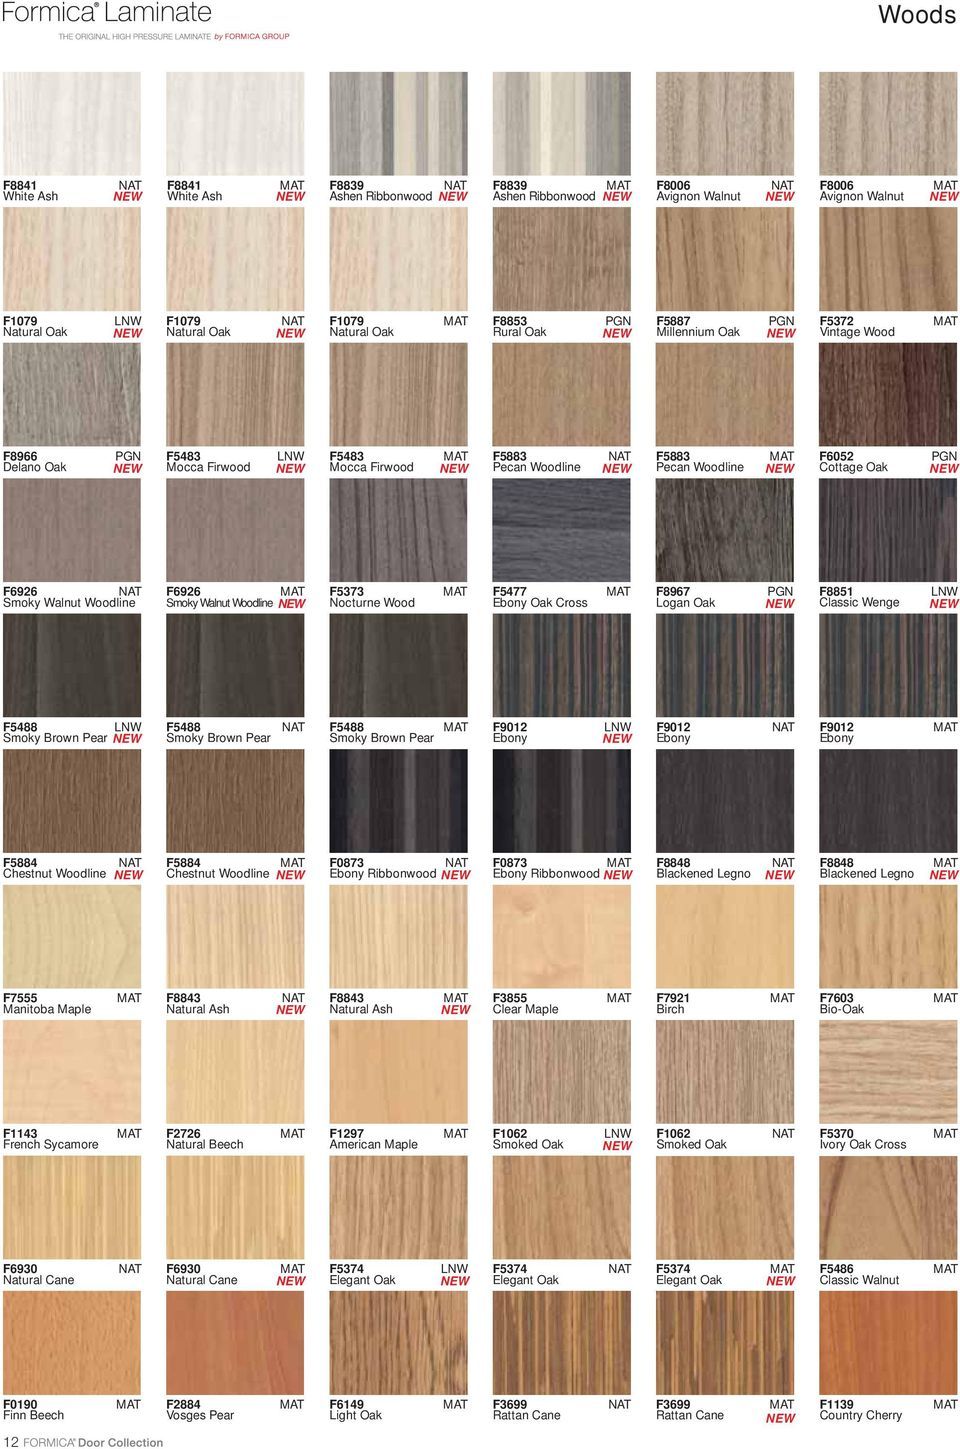 Oak F6926 NAT Smoky Walnut Woodline F6926 Smoky Walnut Woodline F5373 Nocturne Wood F5477 F8967 PGN F8851 LNW Ebony Oak Cross Logan Oak Classic Wenge F5488 LNW F5488 NAT F5488 F9012 LNW F9012 NAT